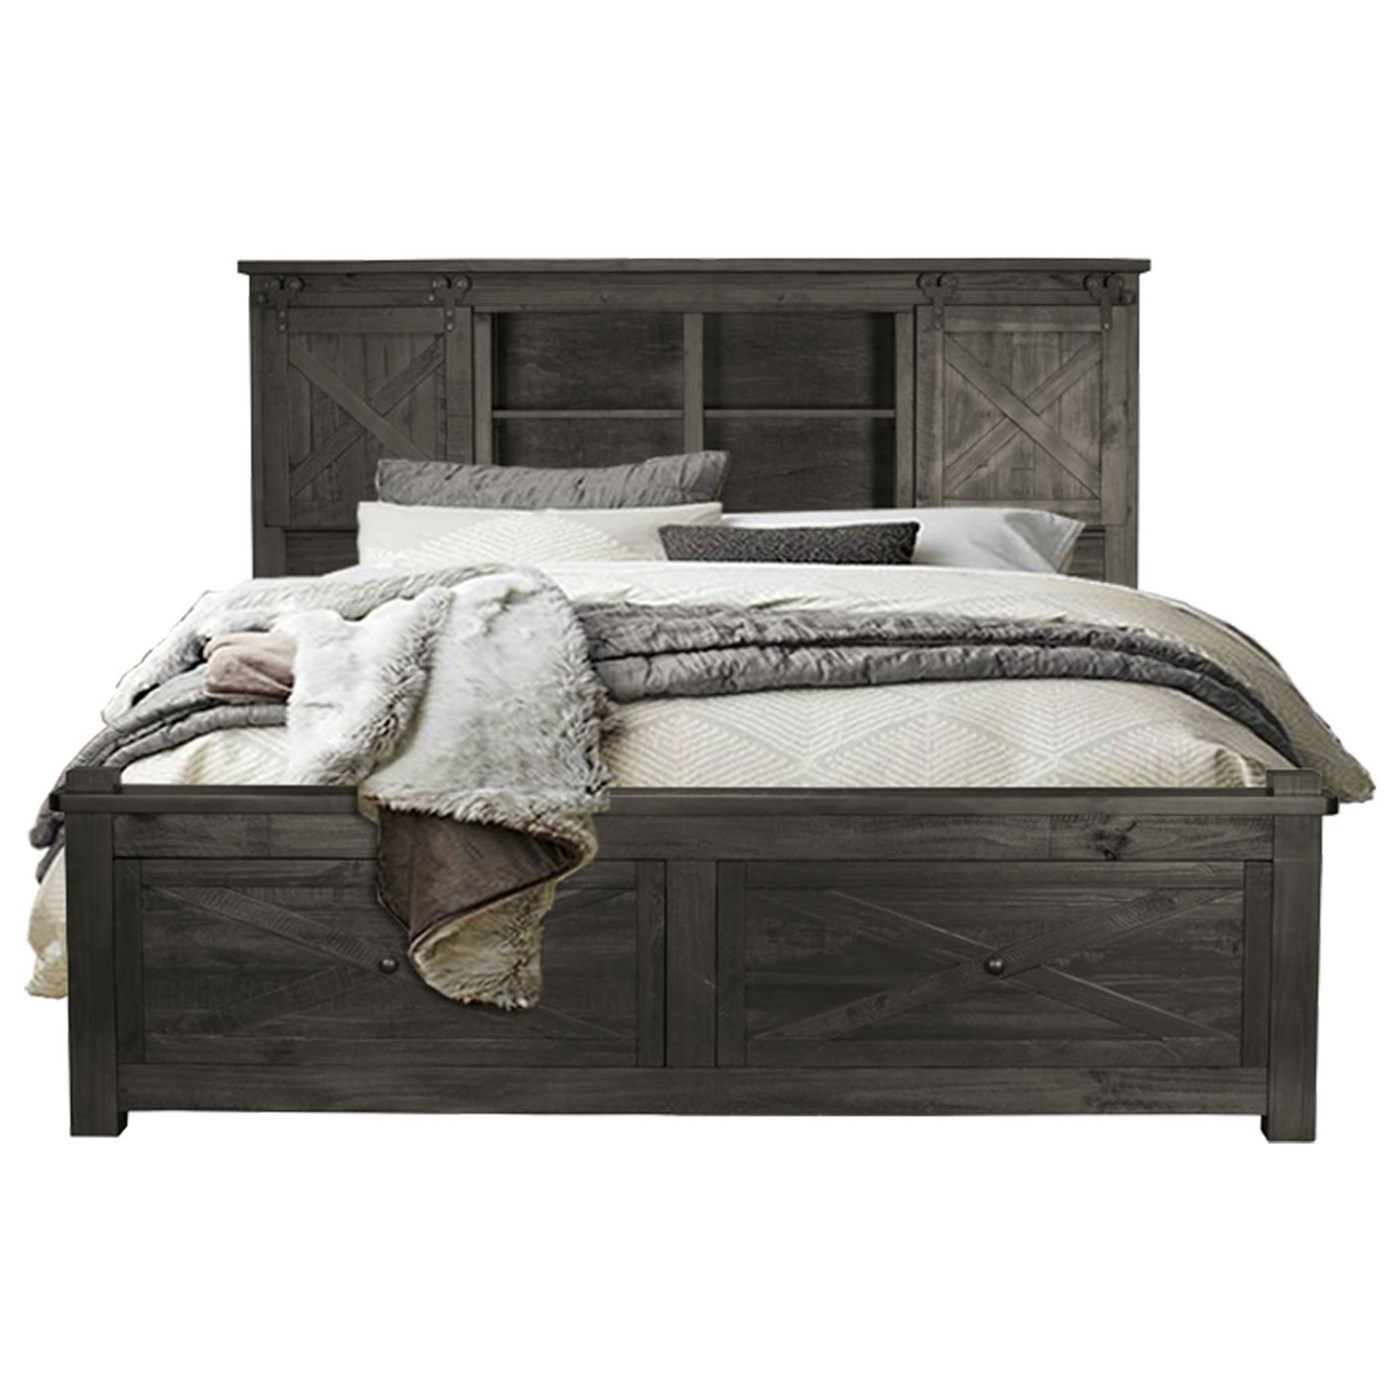 Bedroom Bench King Bed Aamerica Sun Valley King Size Storage Bed With Footboard